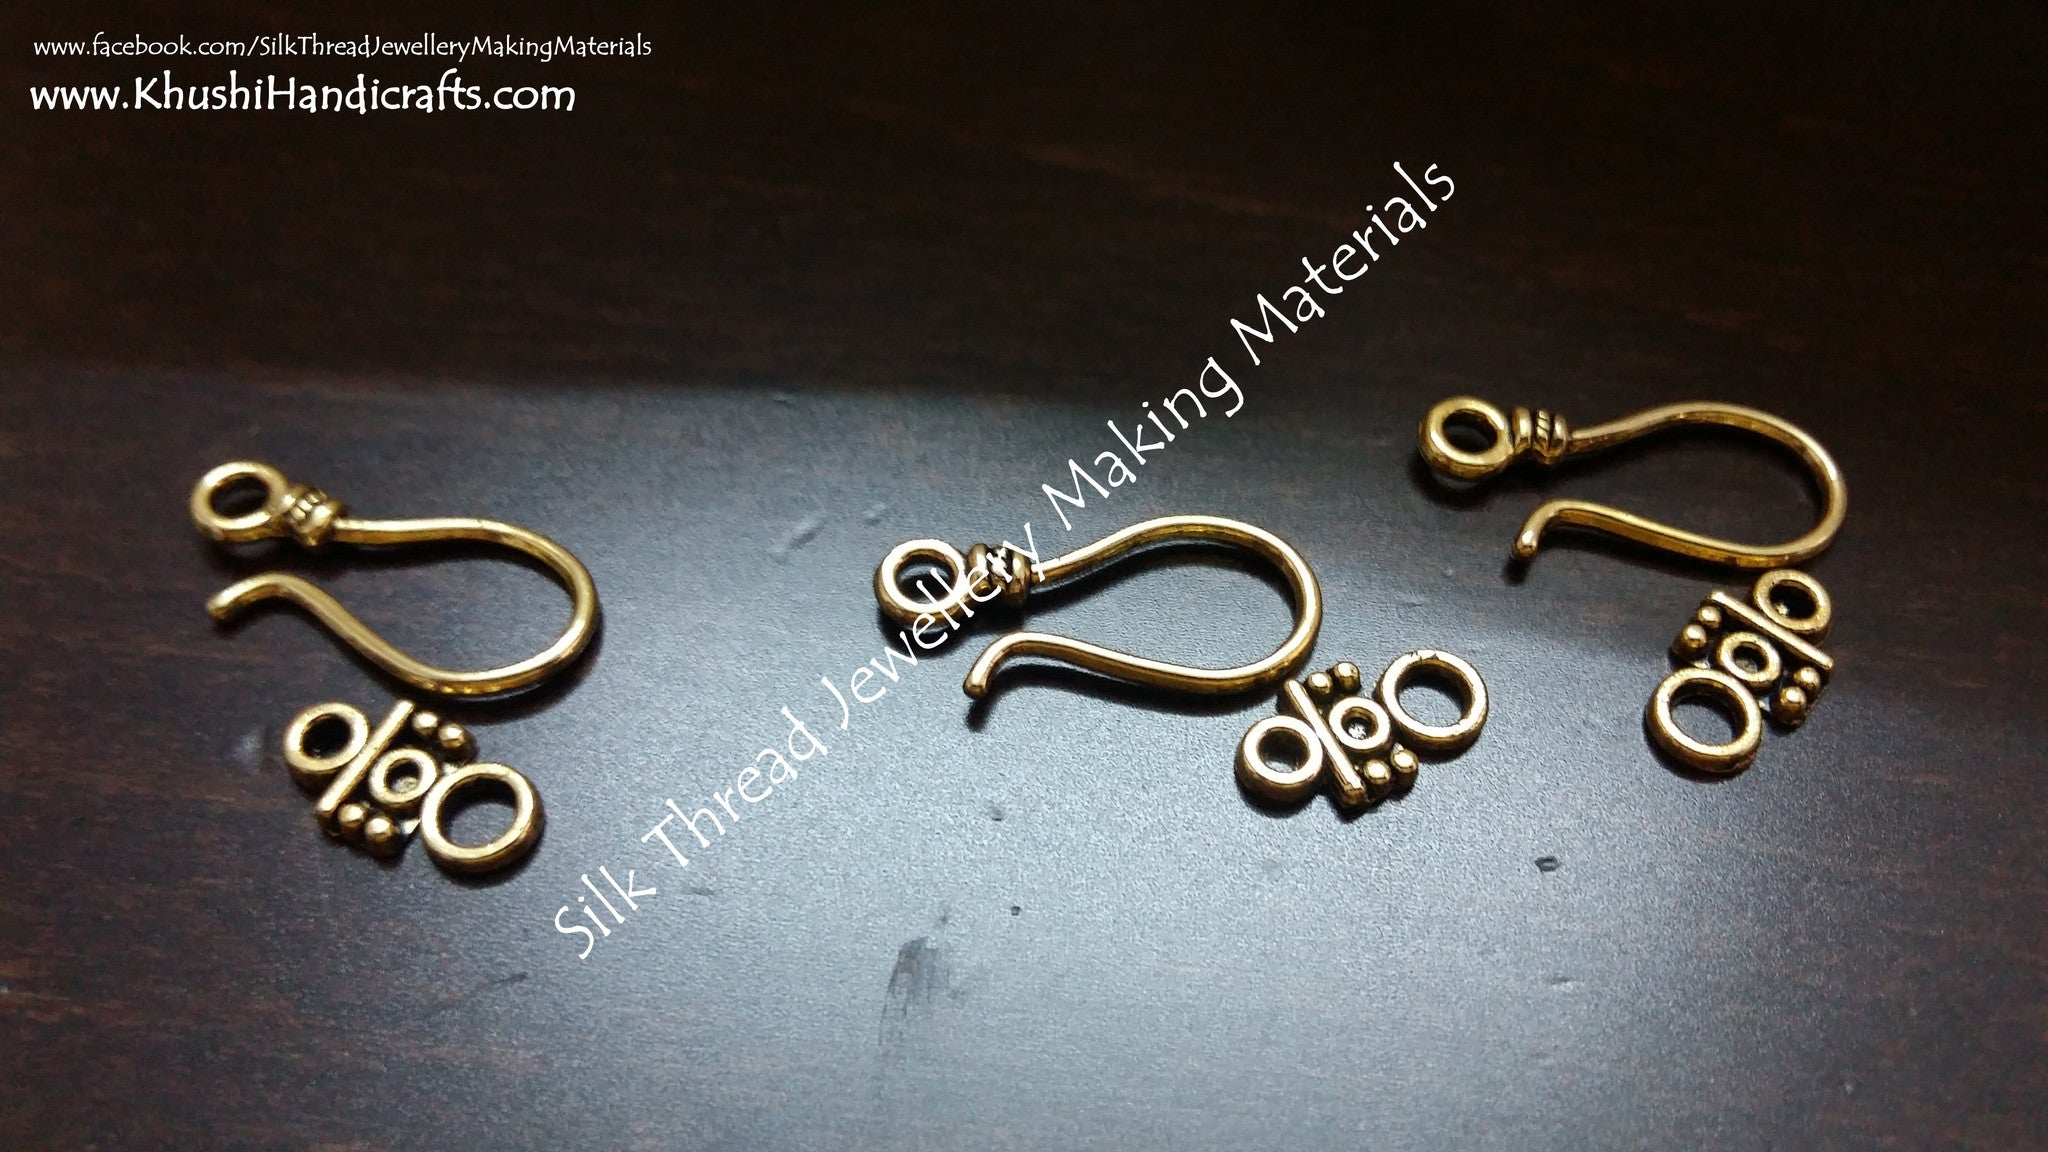 Hook and Eye Clasps in Gold